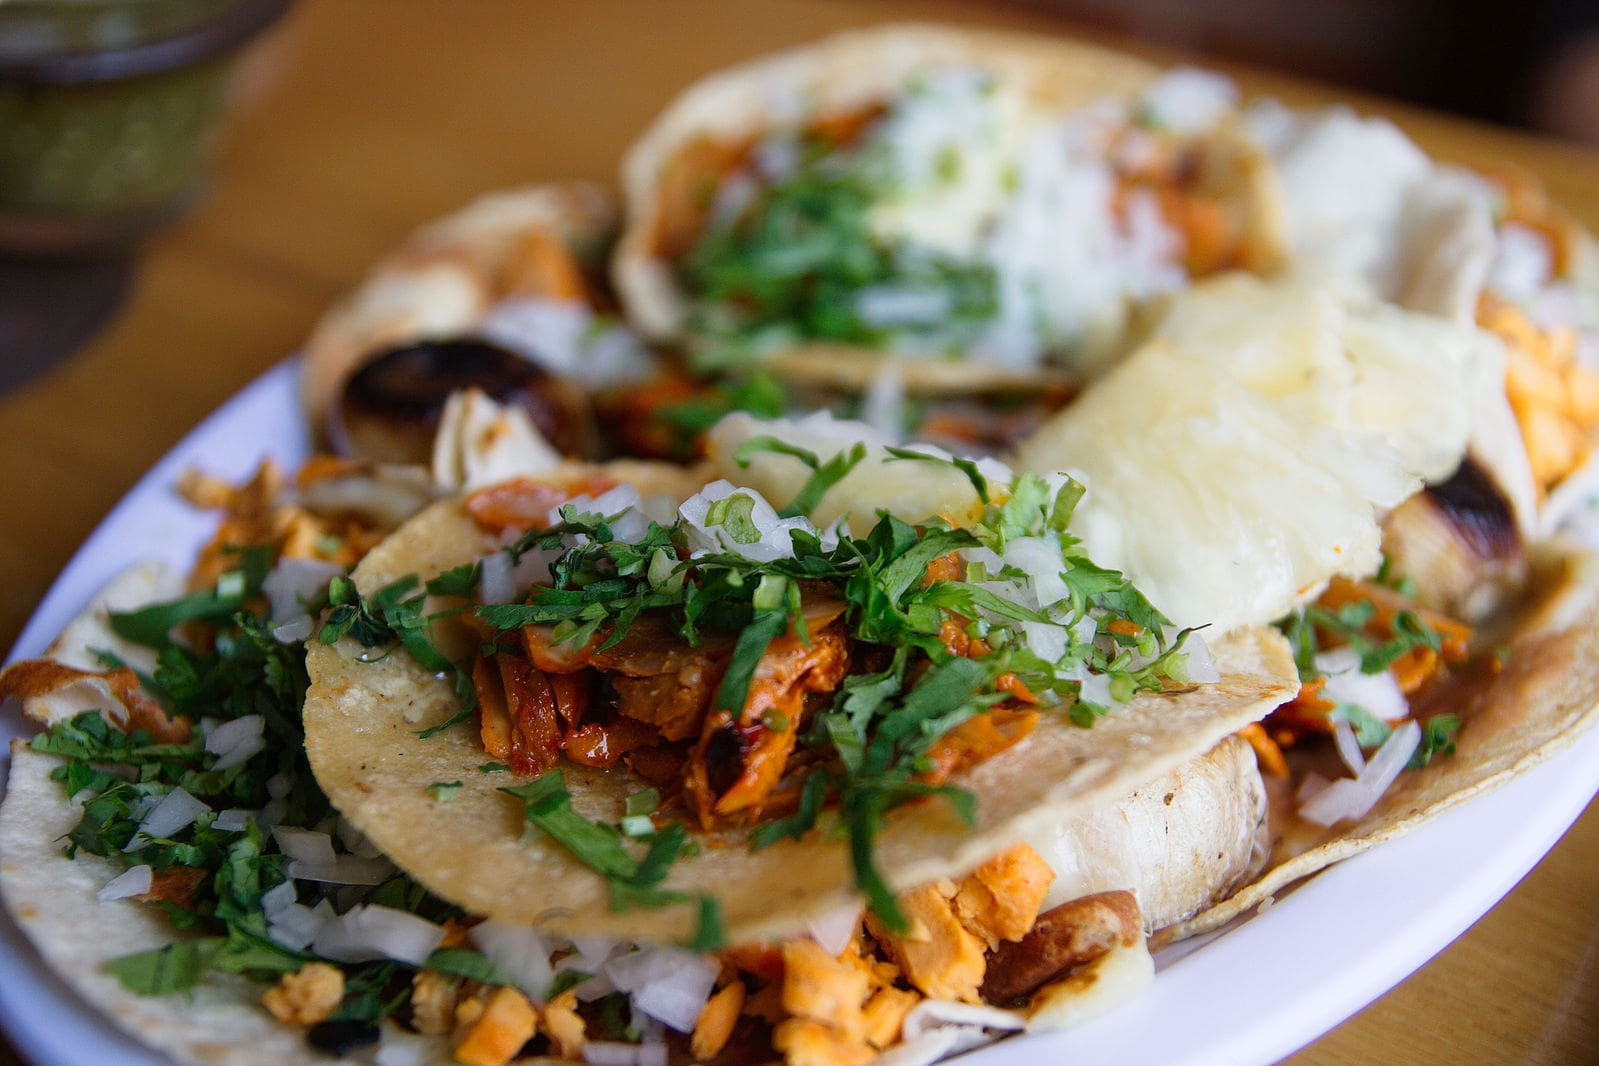 El Parnita is one of the Places to Visit in Mexico City for tacos and tequila